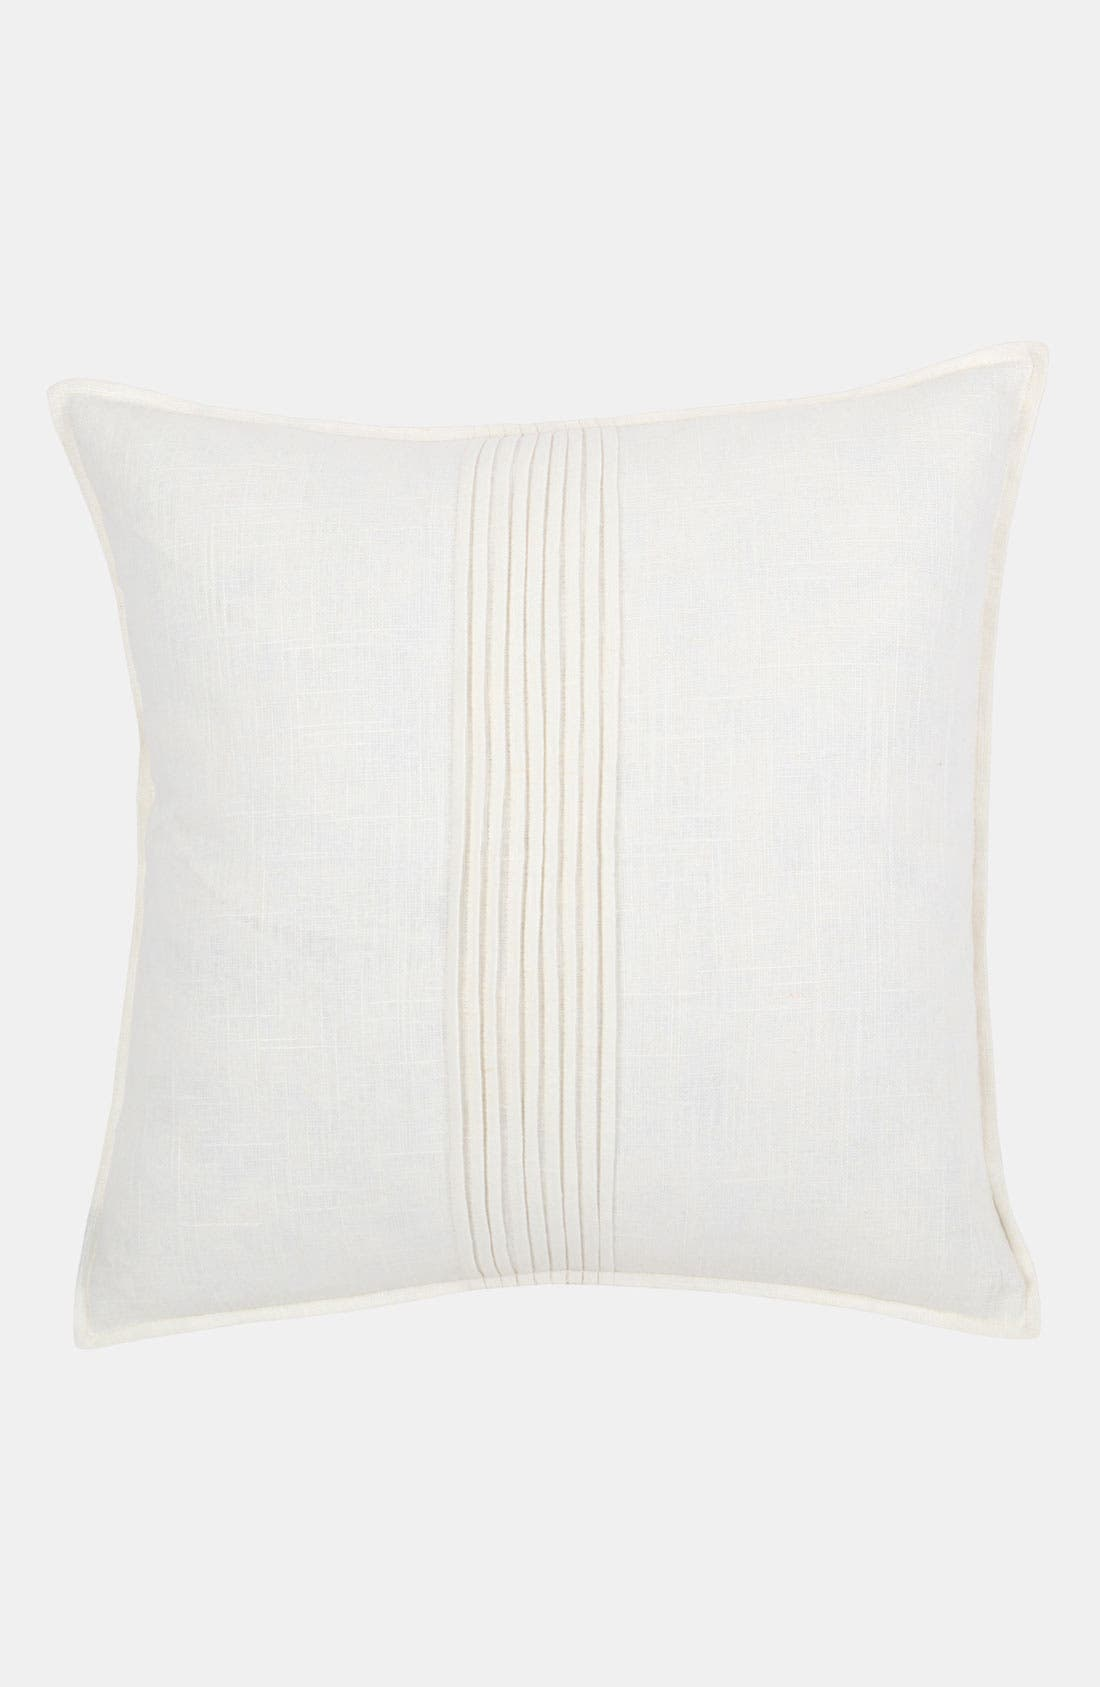 Main Image - Blissliving Home 'Pierce' Pillow (Online Only)